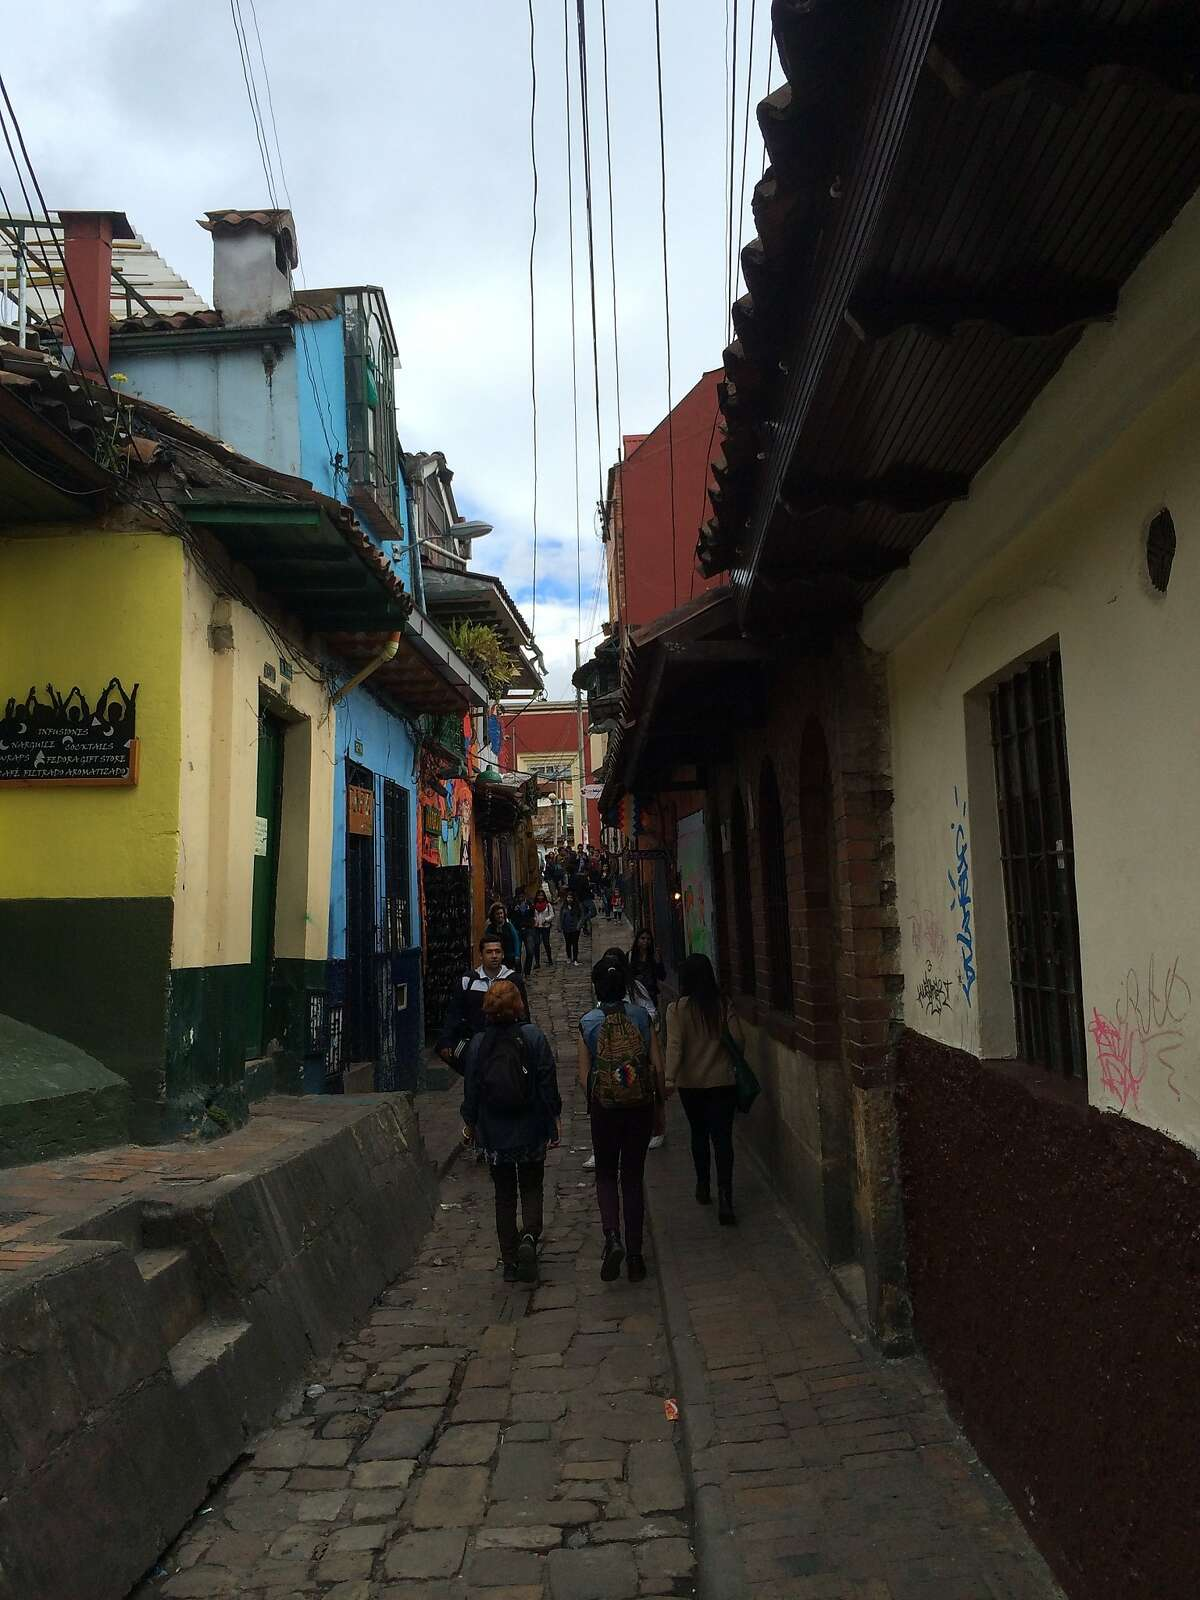 A small alley in Bogota, Colombia, near the old plaza upon which Bogot was founded by the Chorro de Quevedo fountain. Several chicher as serve the drink chicha there.